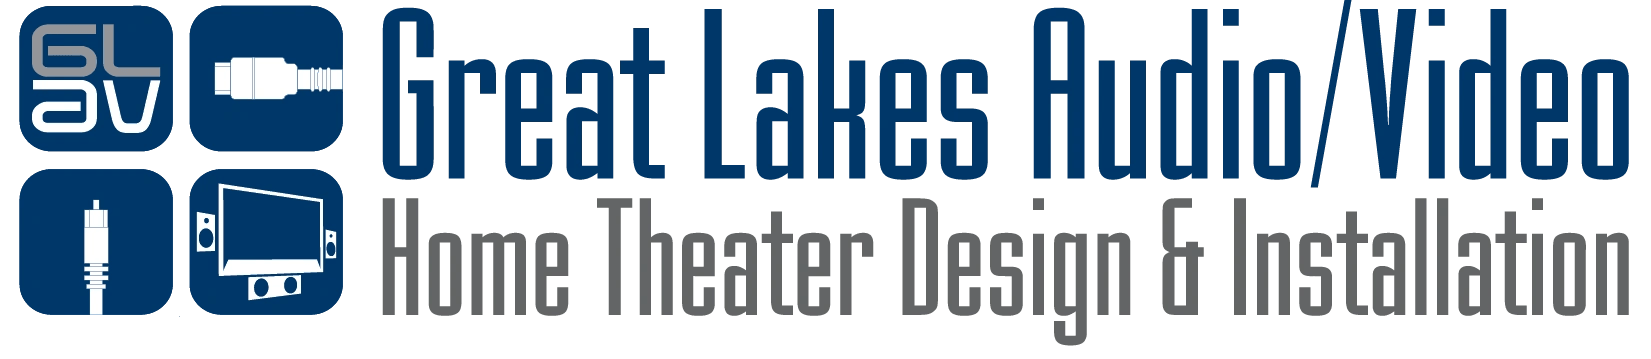 great lakes audio video